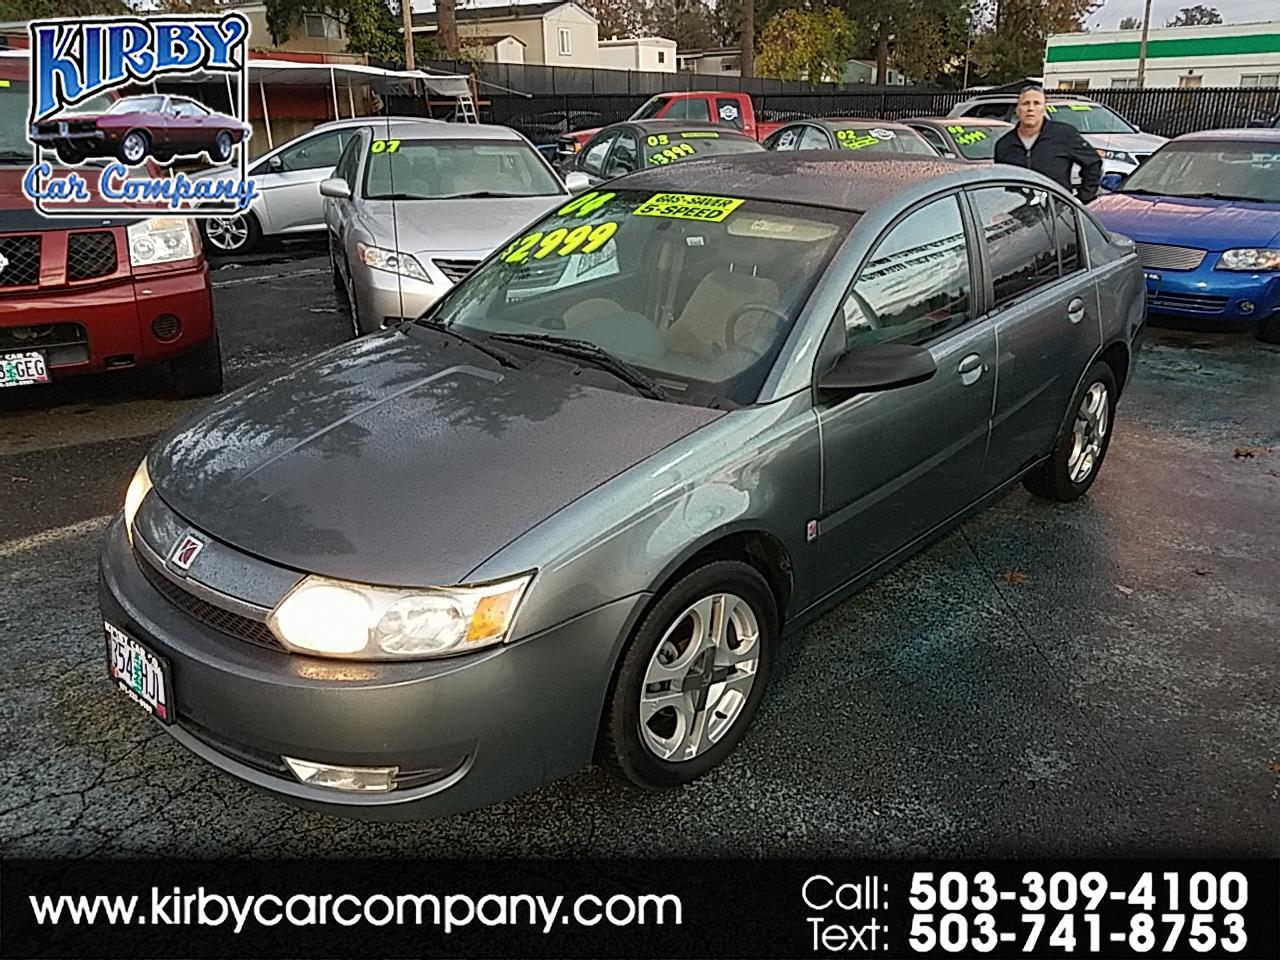 2004 Saturn ION 3 4Dr  5-Spd Manual  MAG WHEELS!  CLEAN TITLE!